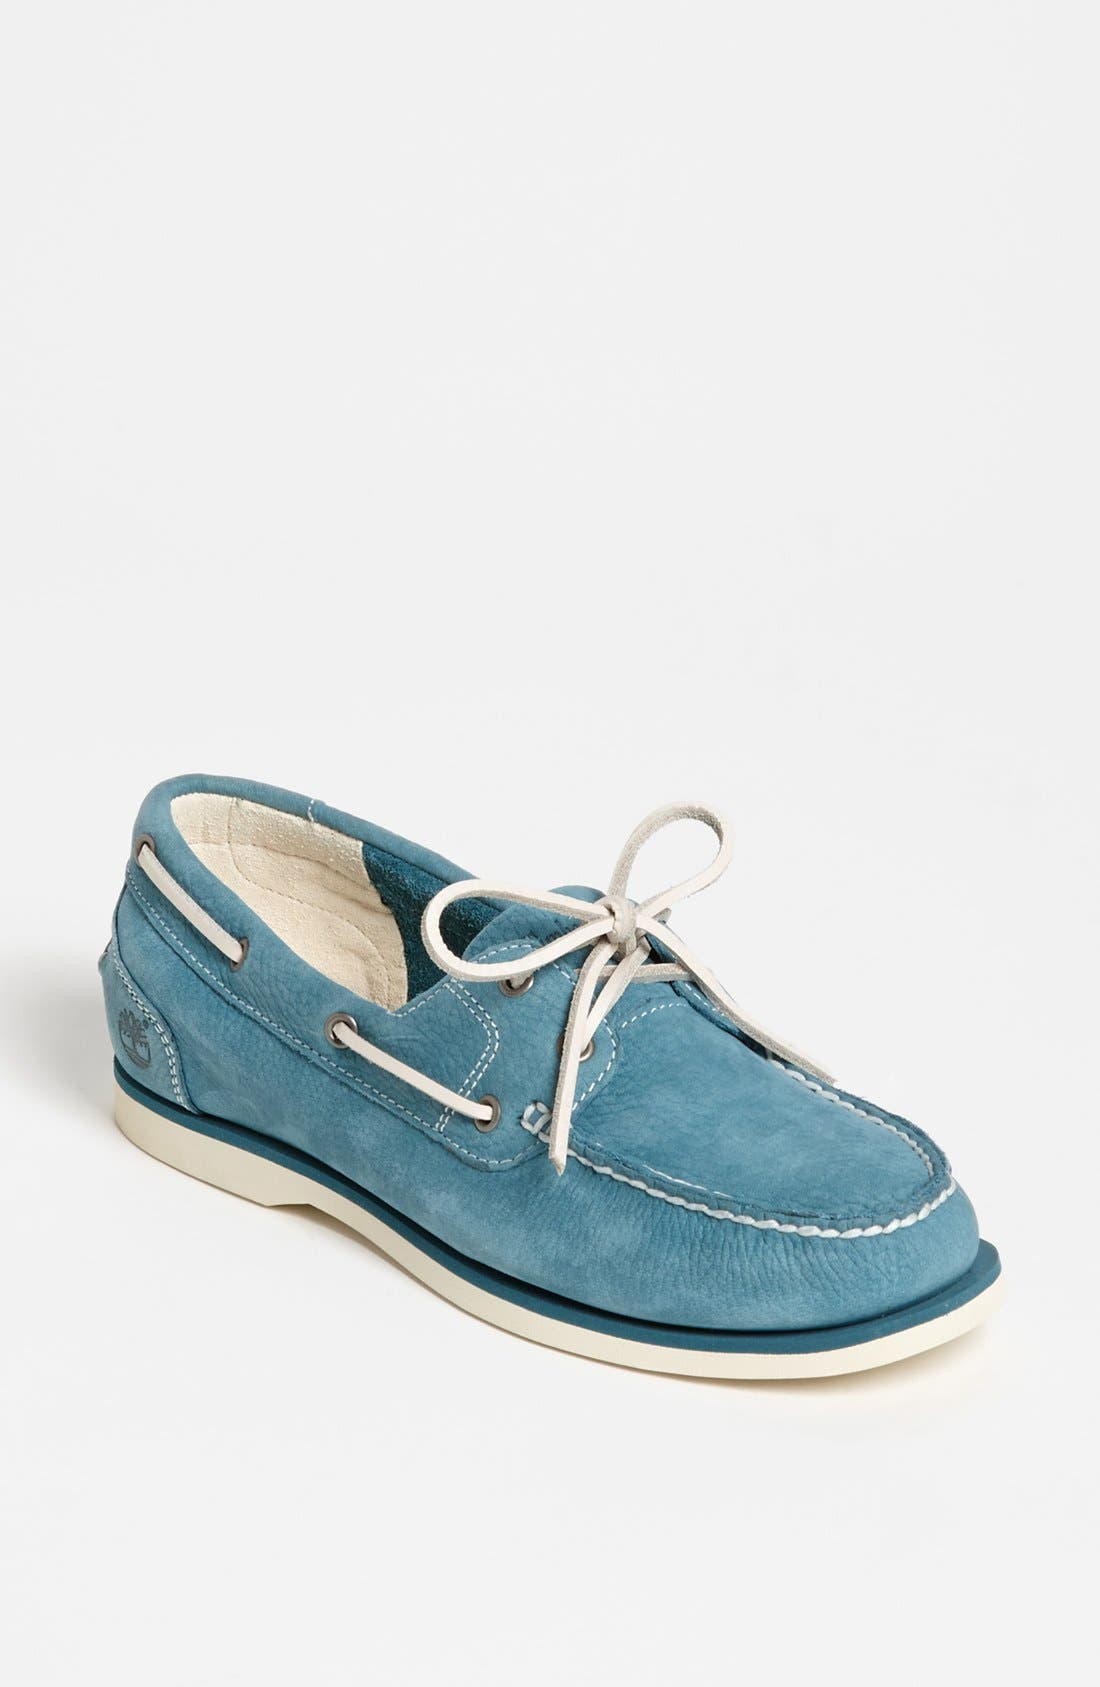 Alternate Image 1 Selected - Timberland Earthkeepers® 'Casco Bay' Boat Shoe